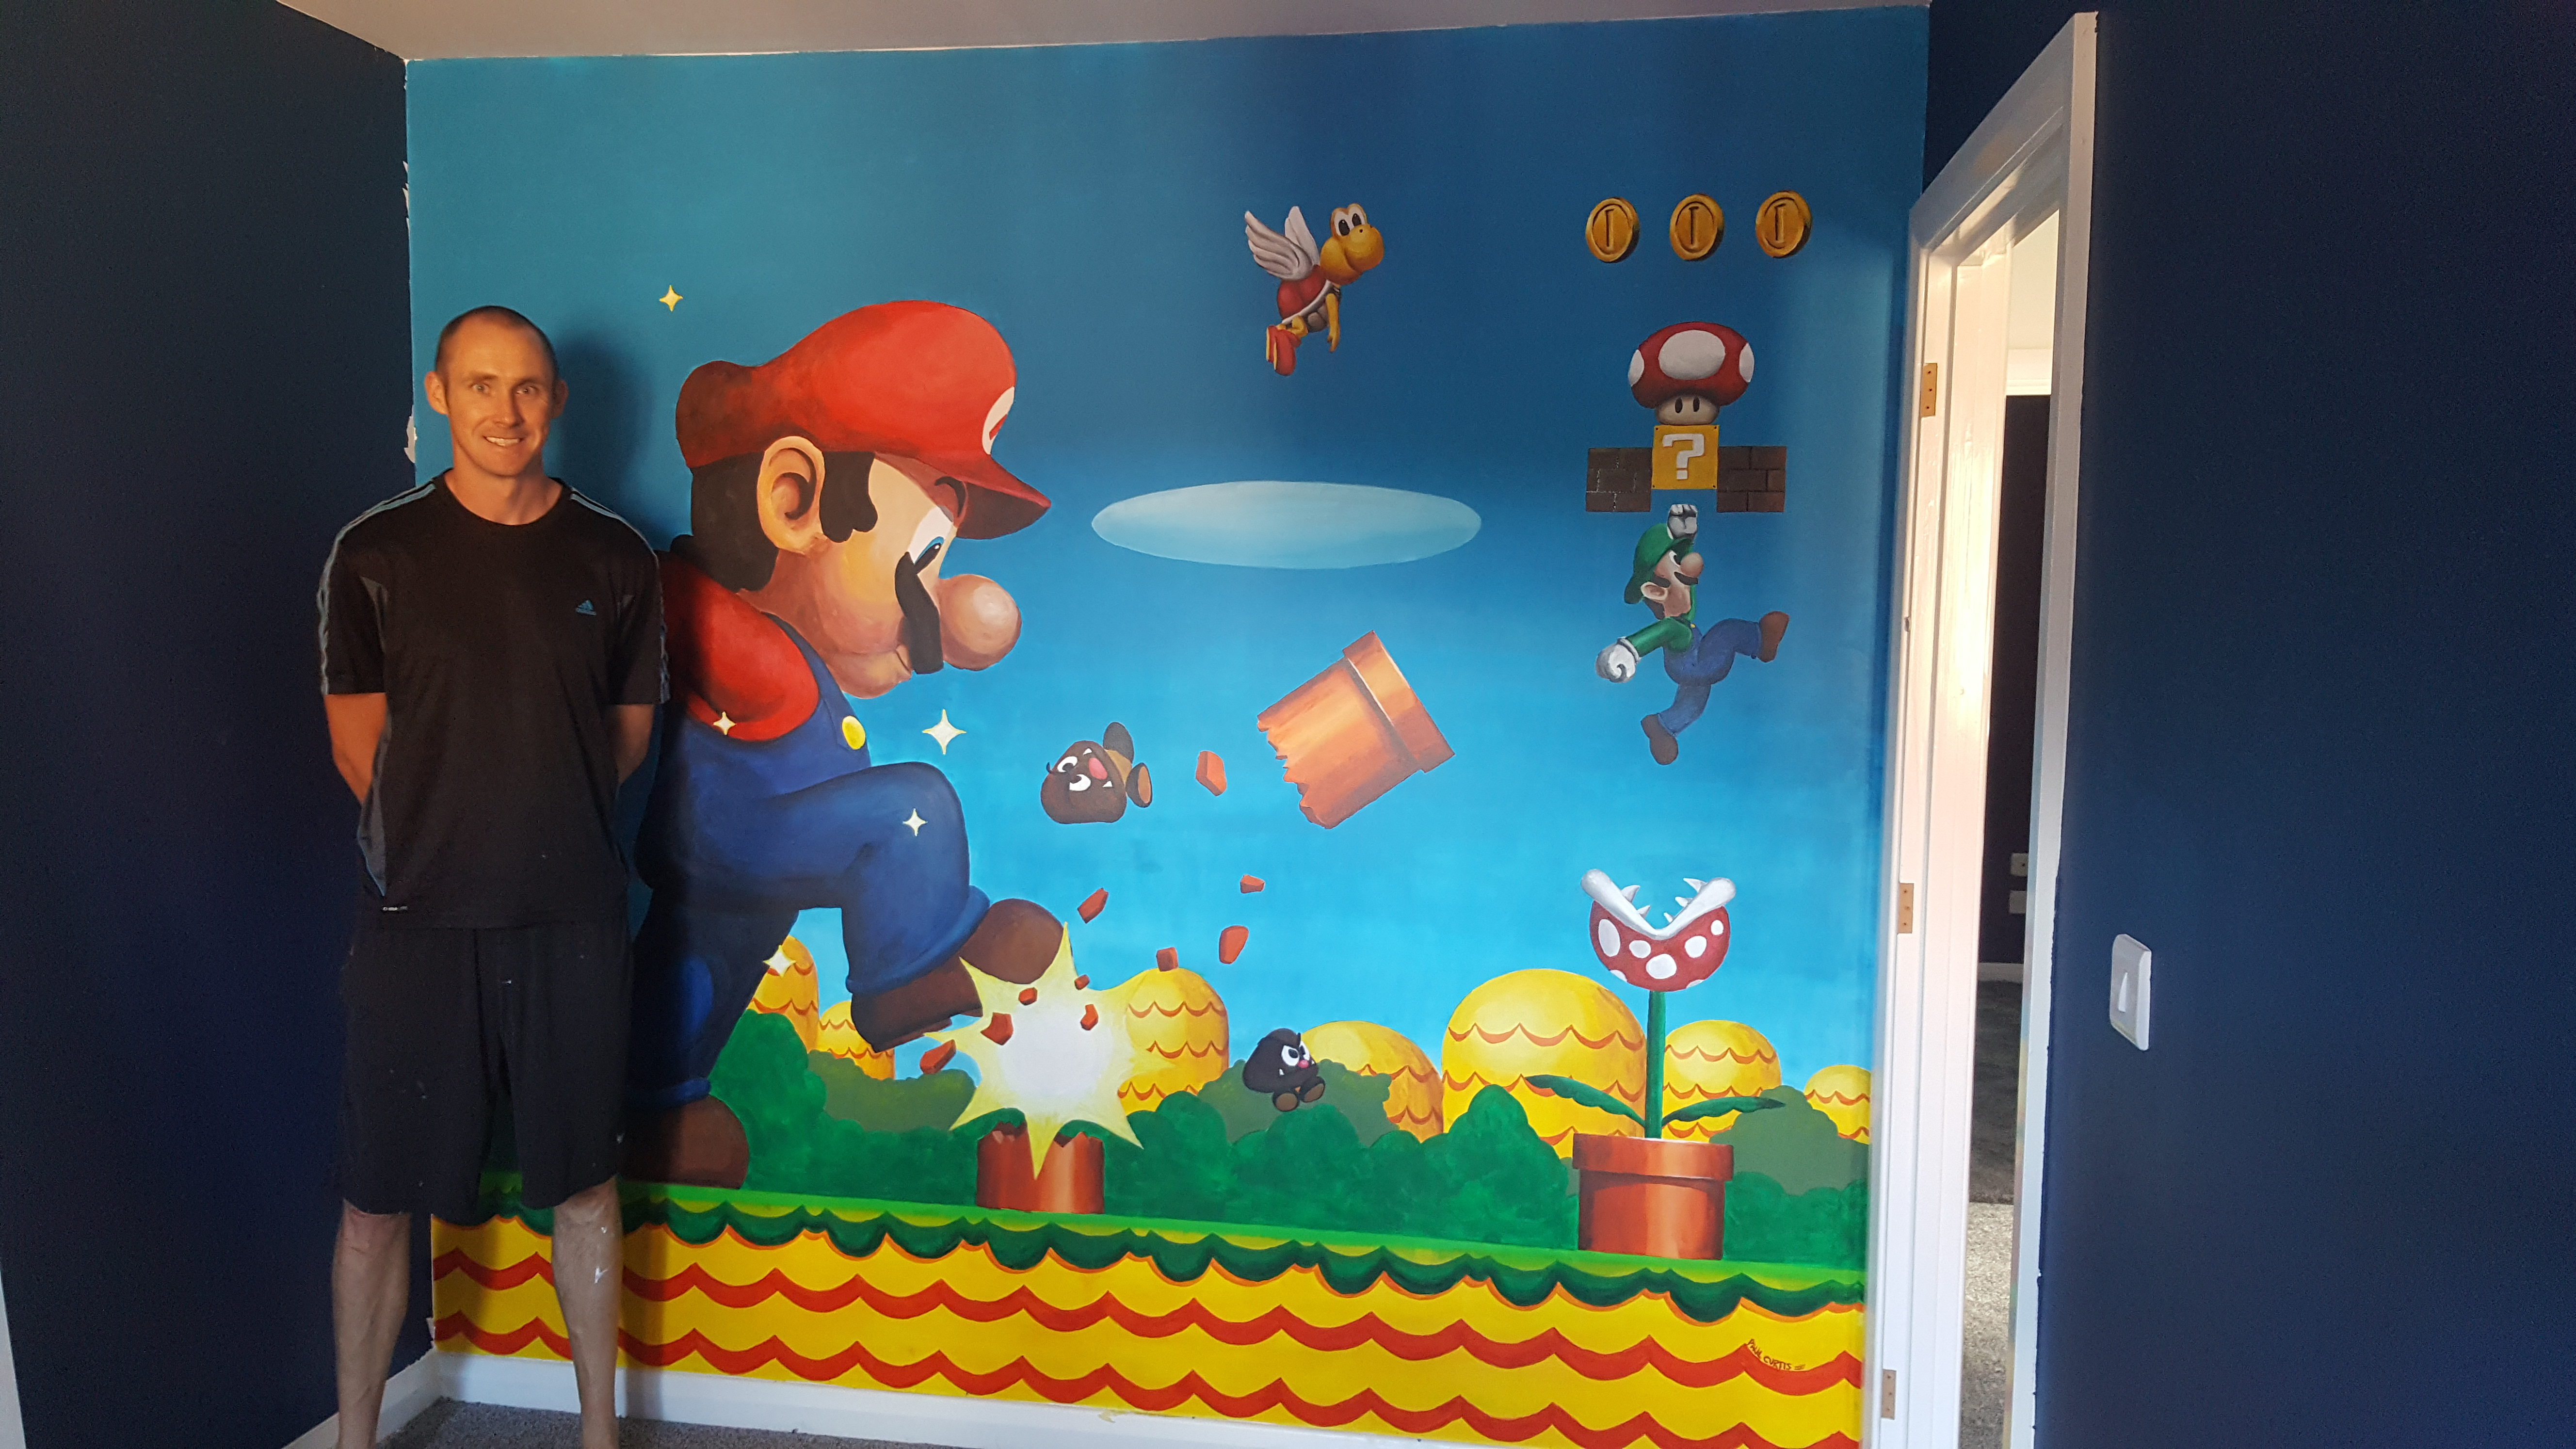 Super Mario Bedroom Mural